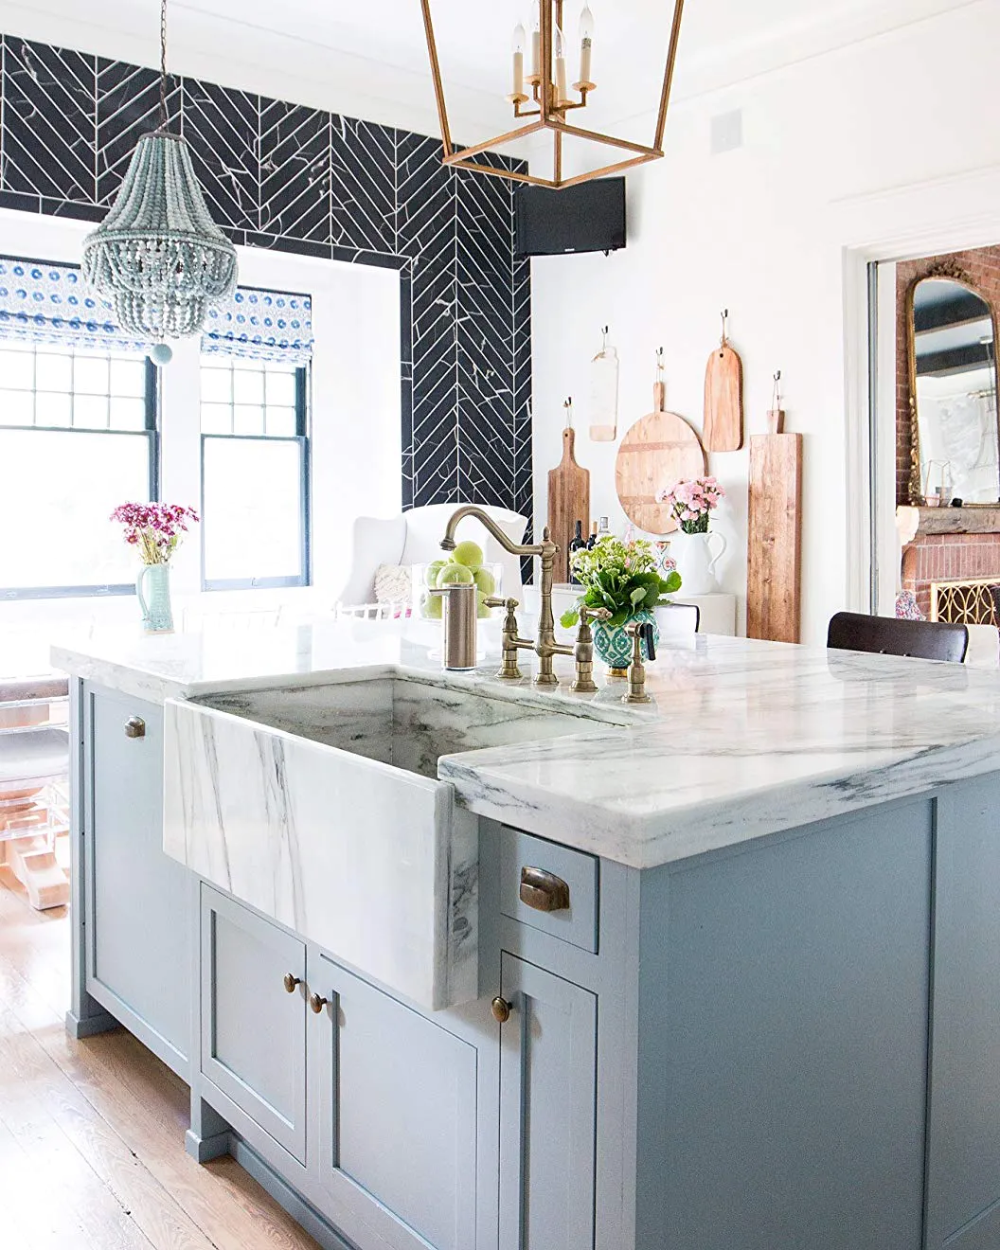 Kitchen Inspo Photos From #FoundItOnAmazon